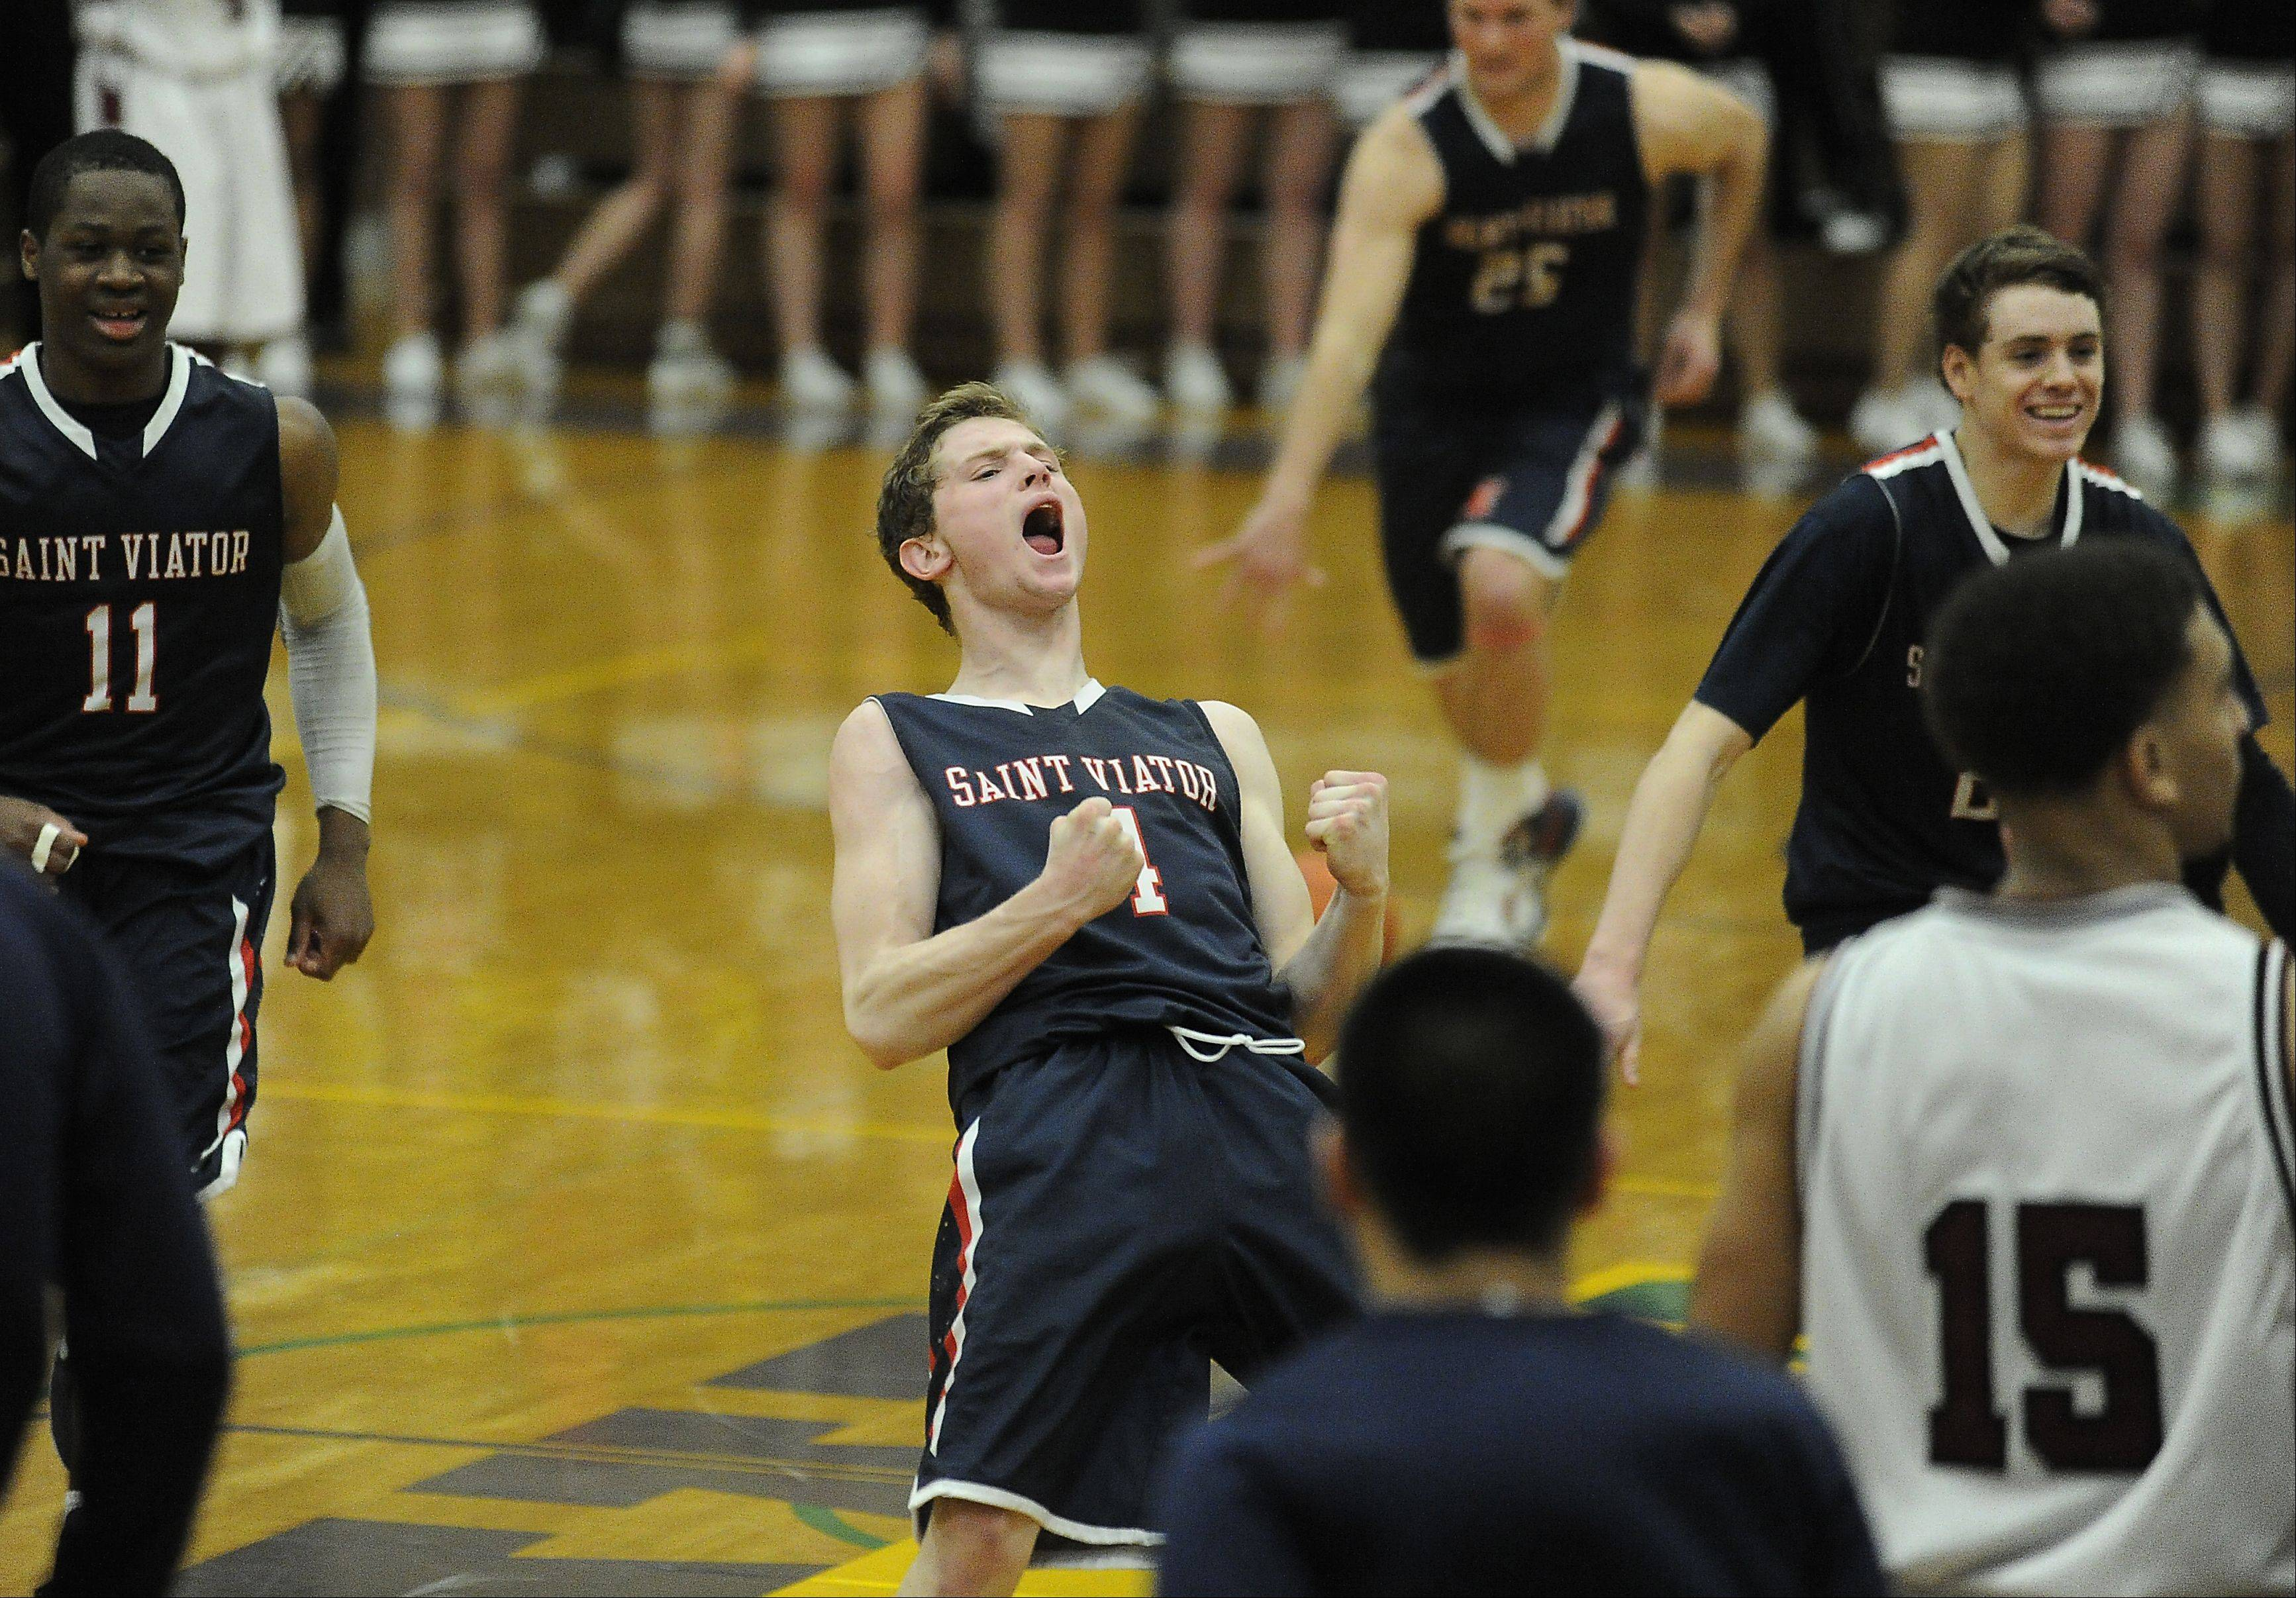 Images: St. Viator vs. Zion-Benton, boys basketball